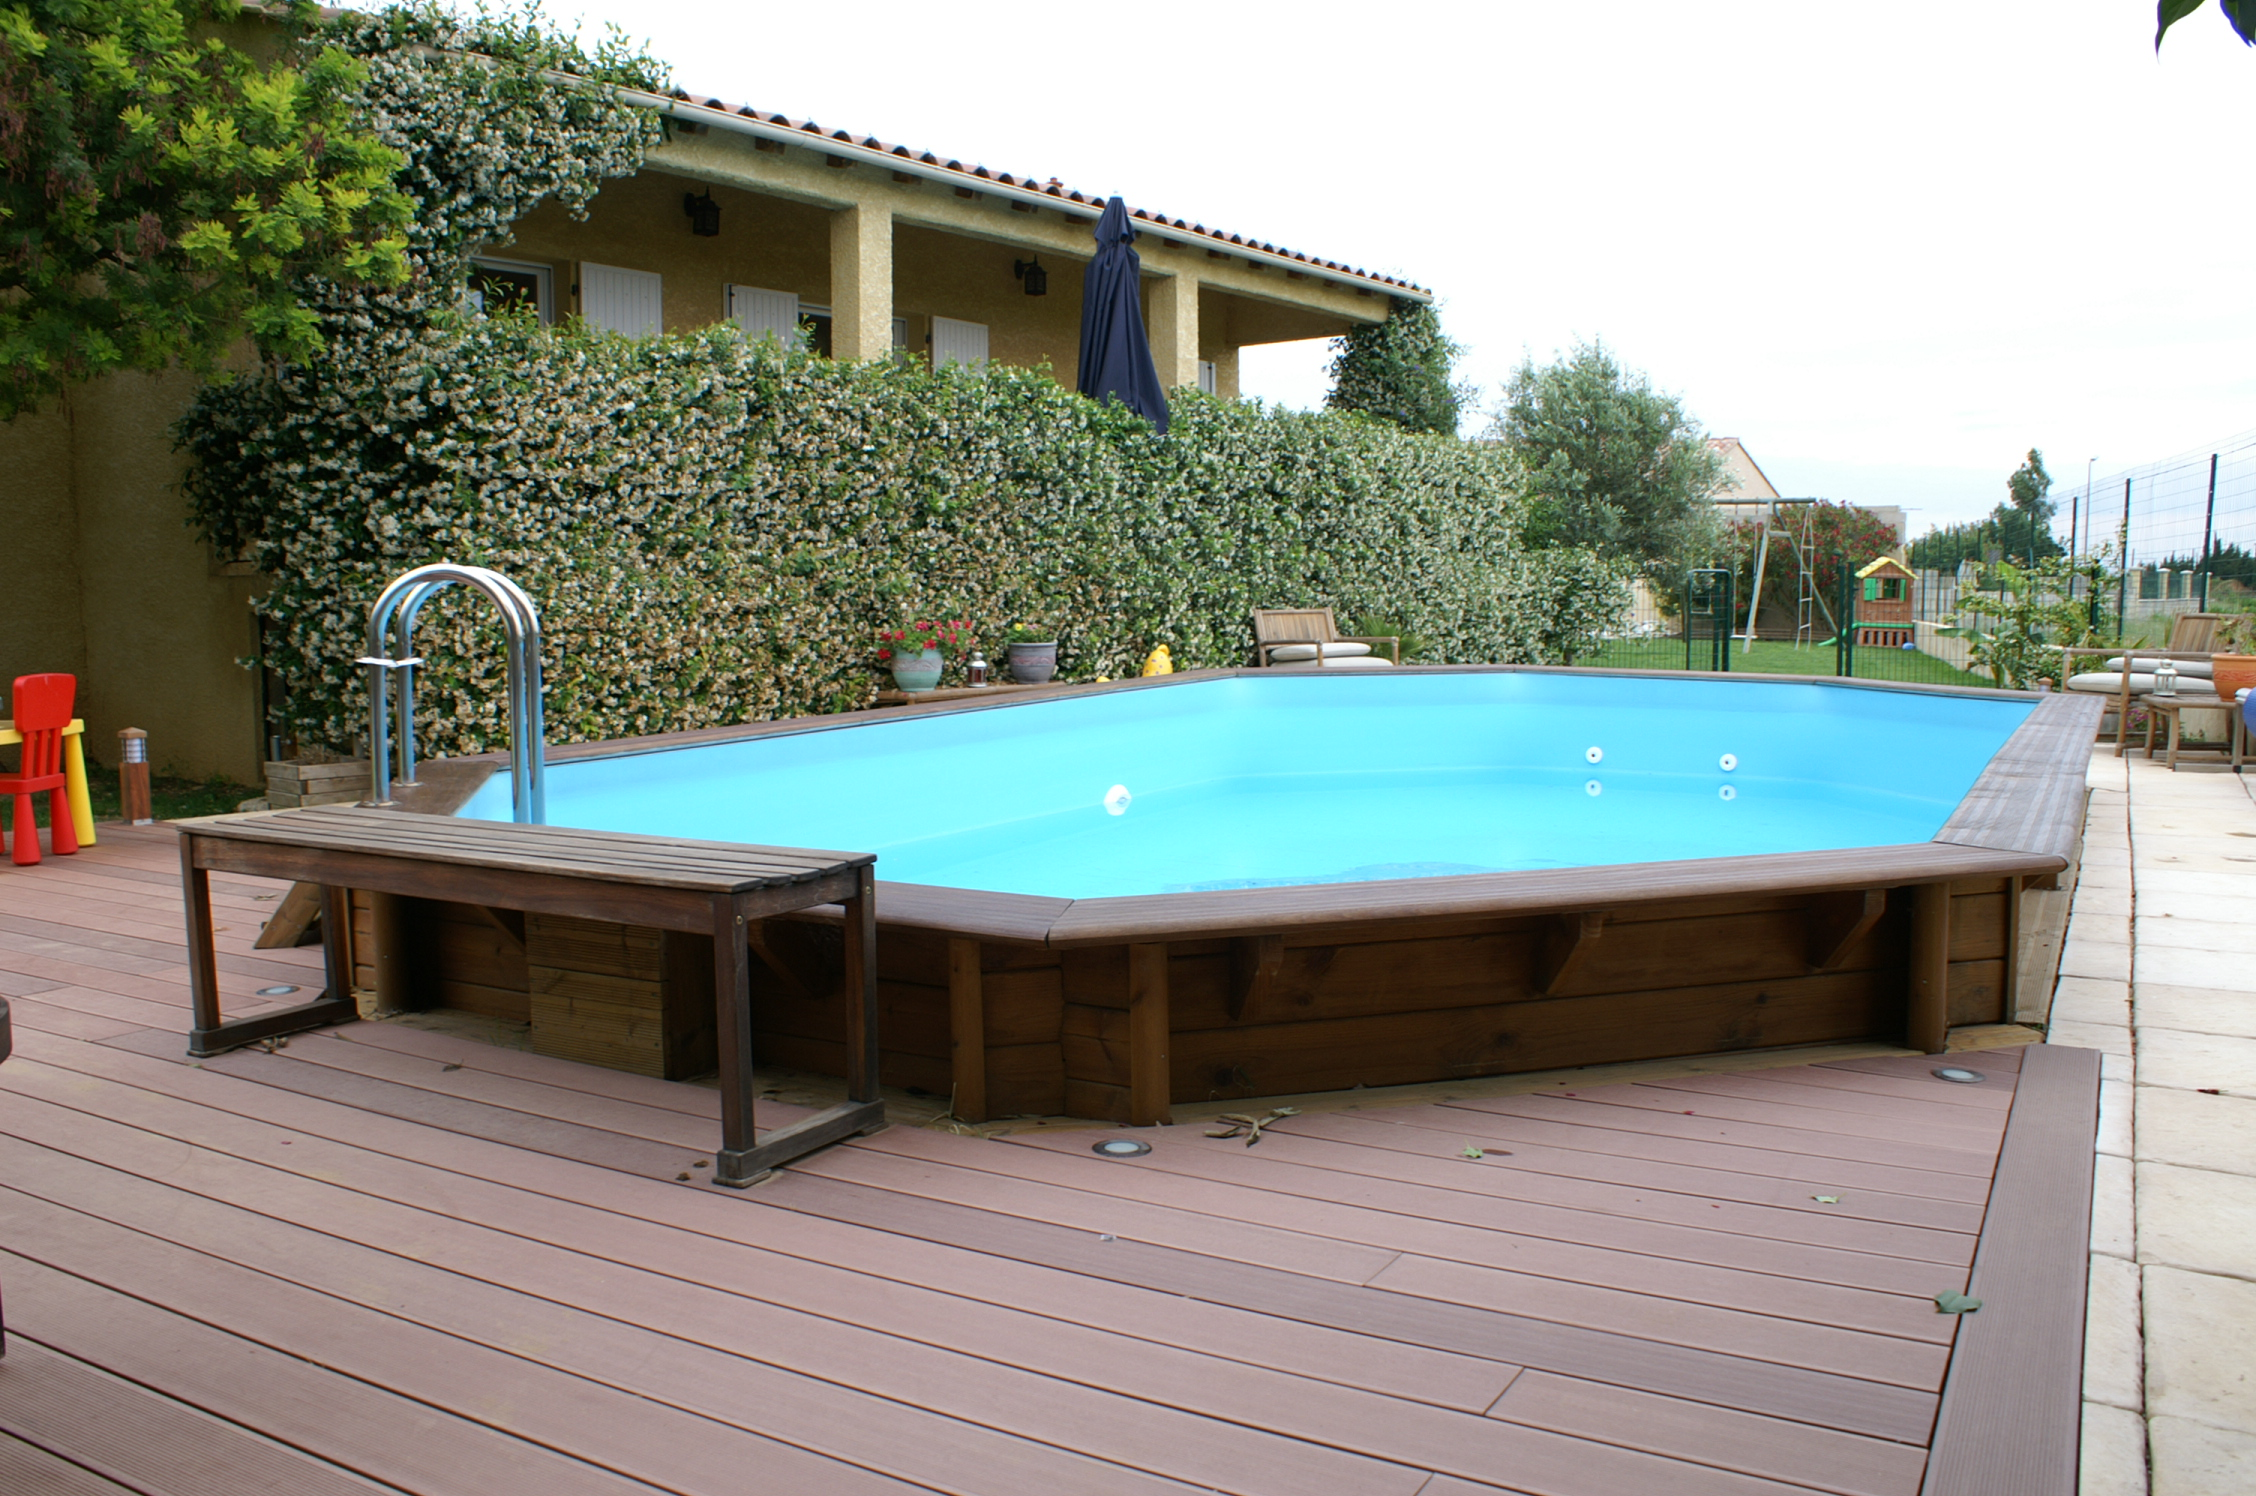 Construction piscines nimes gepad piscines et spa 30000 for Piscine hors sol 4mx3m